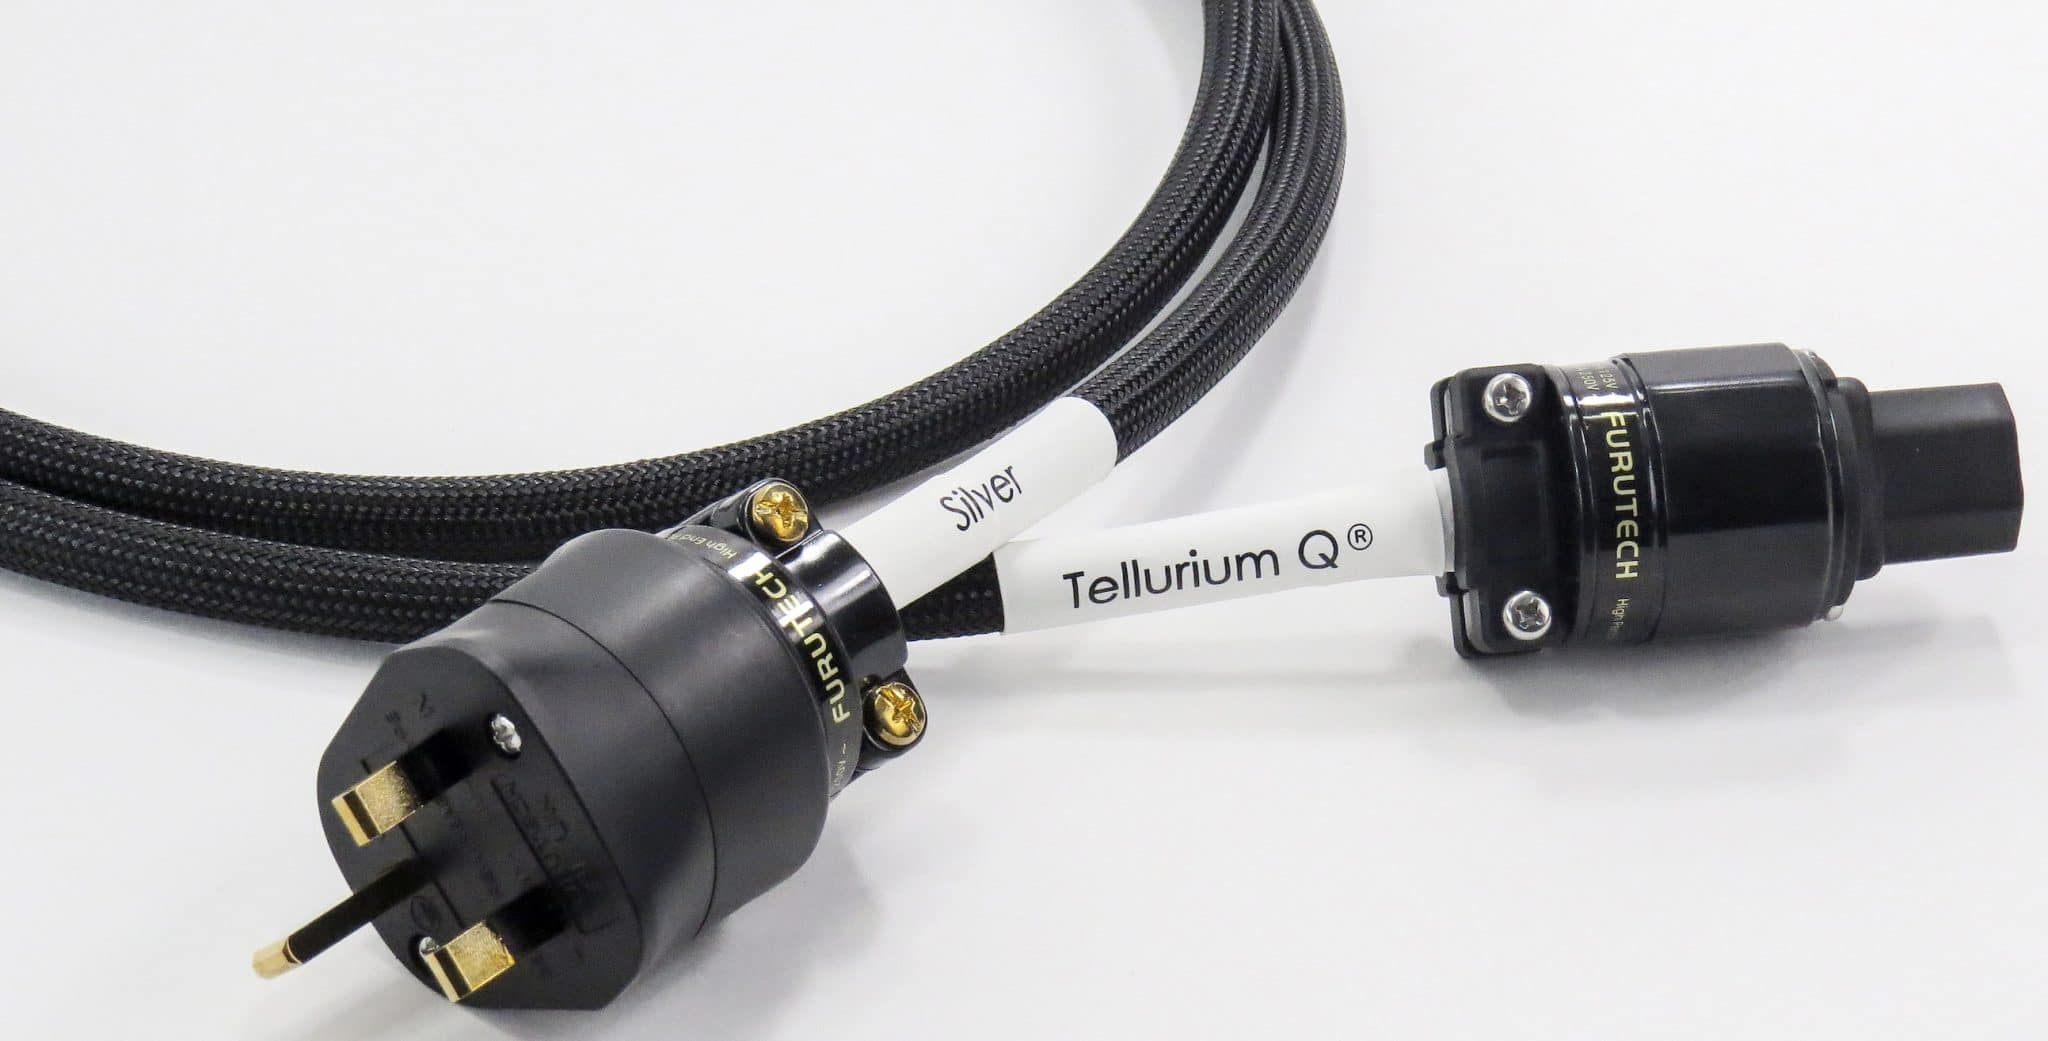 Silver Mains Cabling From Tellurium Q